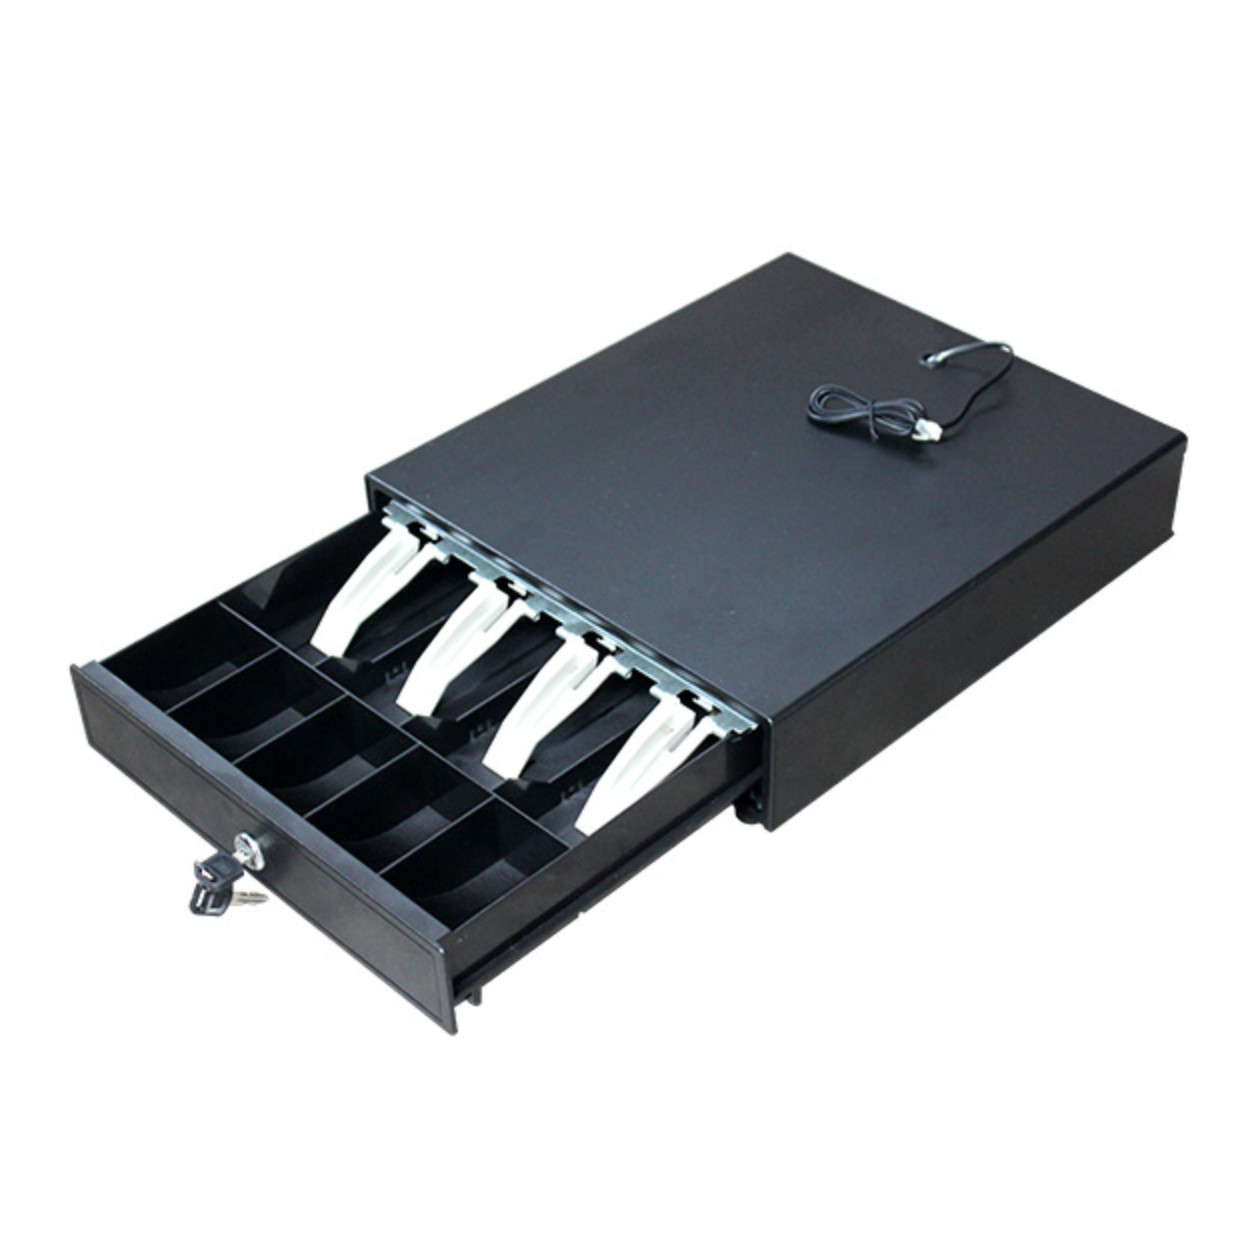 Hot Selling Cash Drawer in POS Systems 12V, High Quality Supermarket Money Lock Box Cash Register for sale